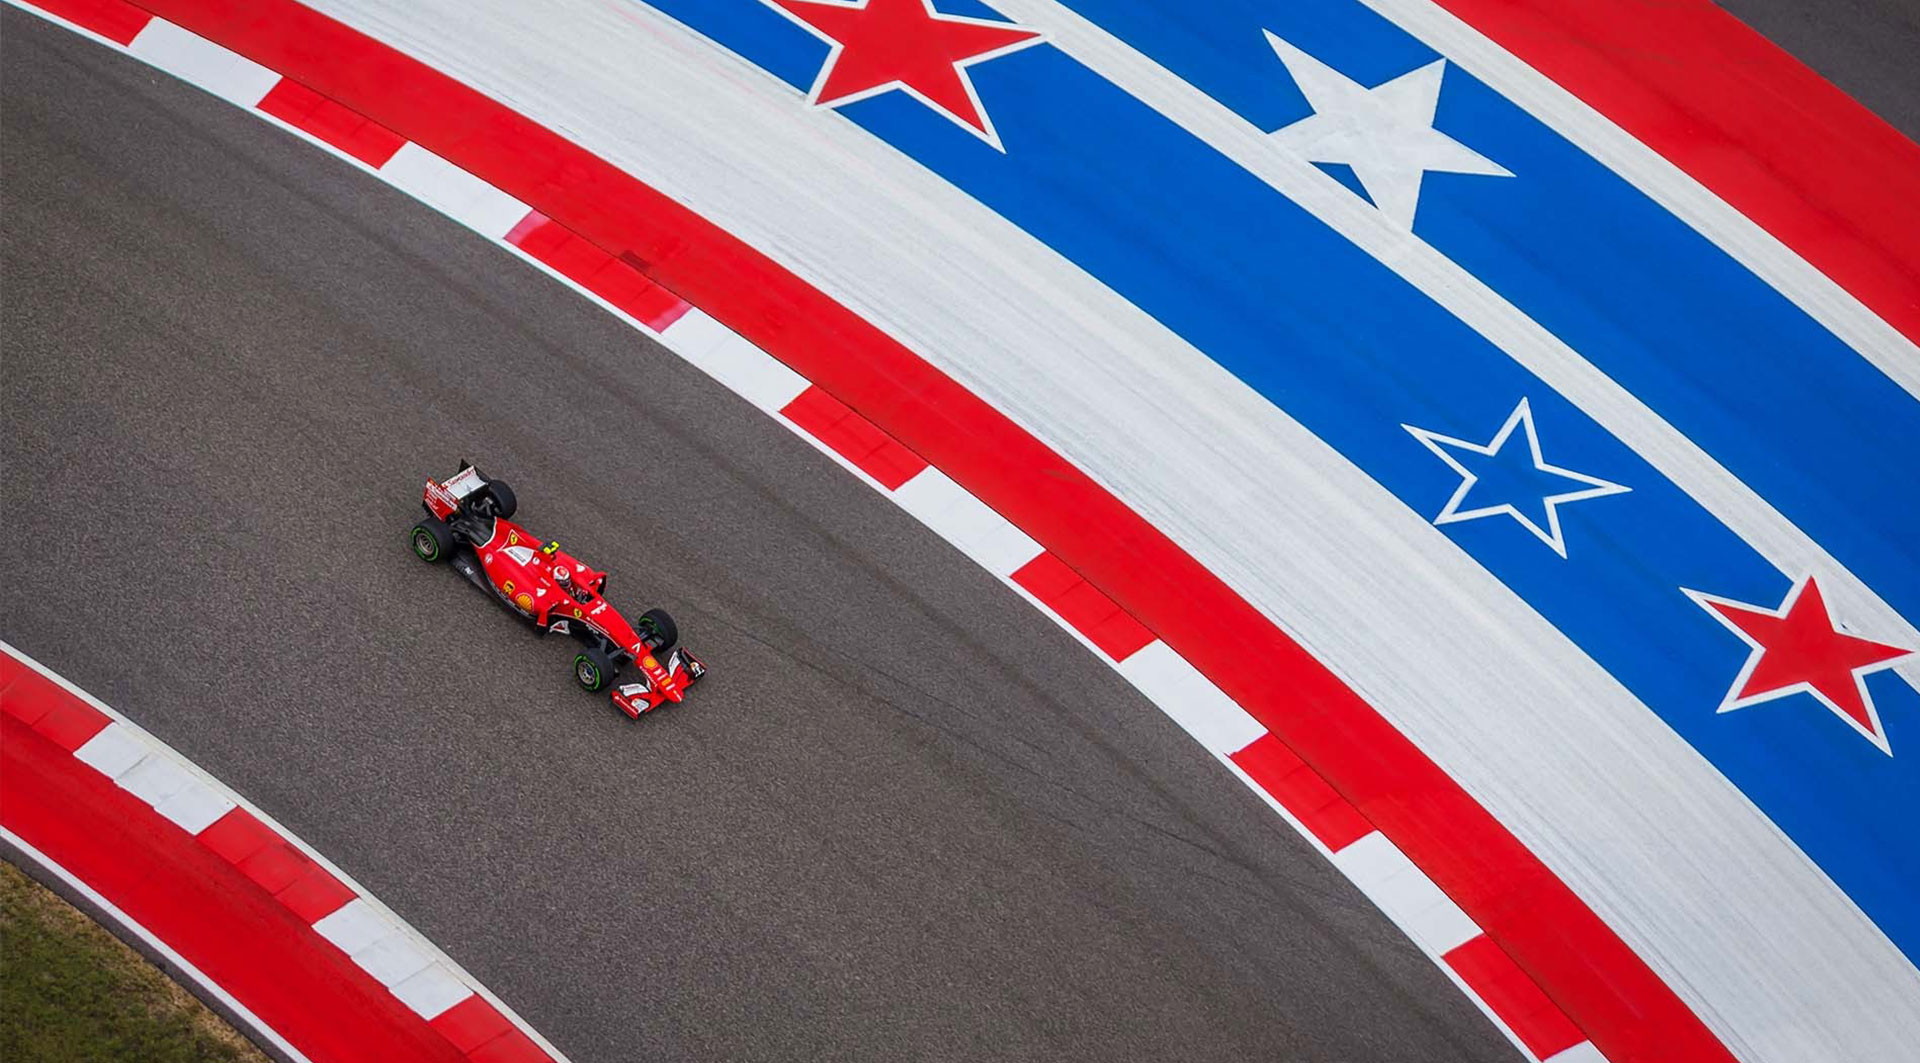 Us Grand Prix >> 2019 Us Grand Prix Packages Travel Packages Roadtrips